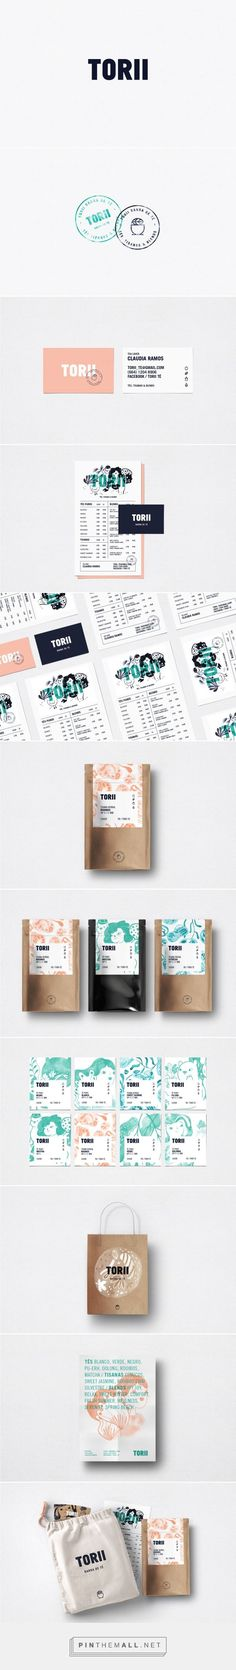 TORII Tea Lovers Branding and Packaging by Stundra | Fivestar Branding Agency – Design and Branding Agency & Curated Inspiration Gallery